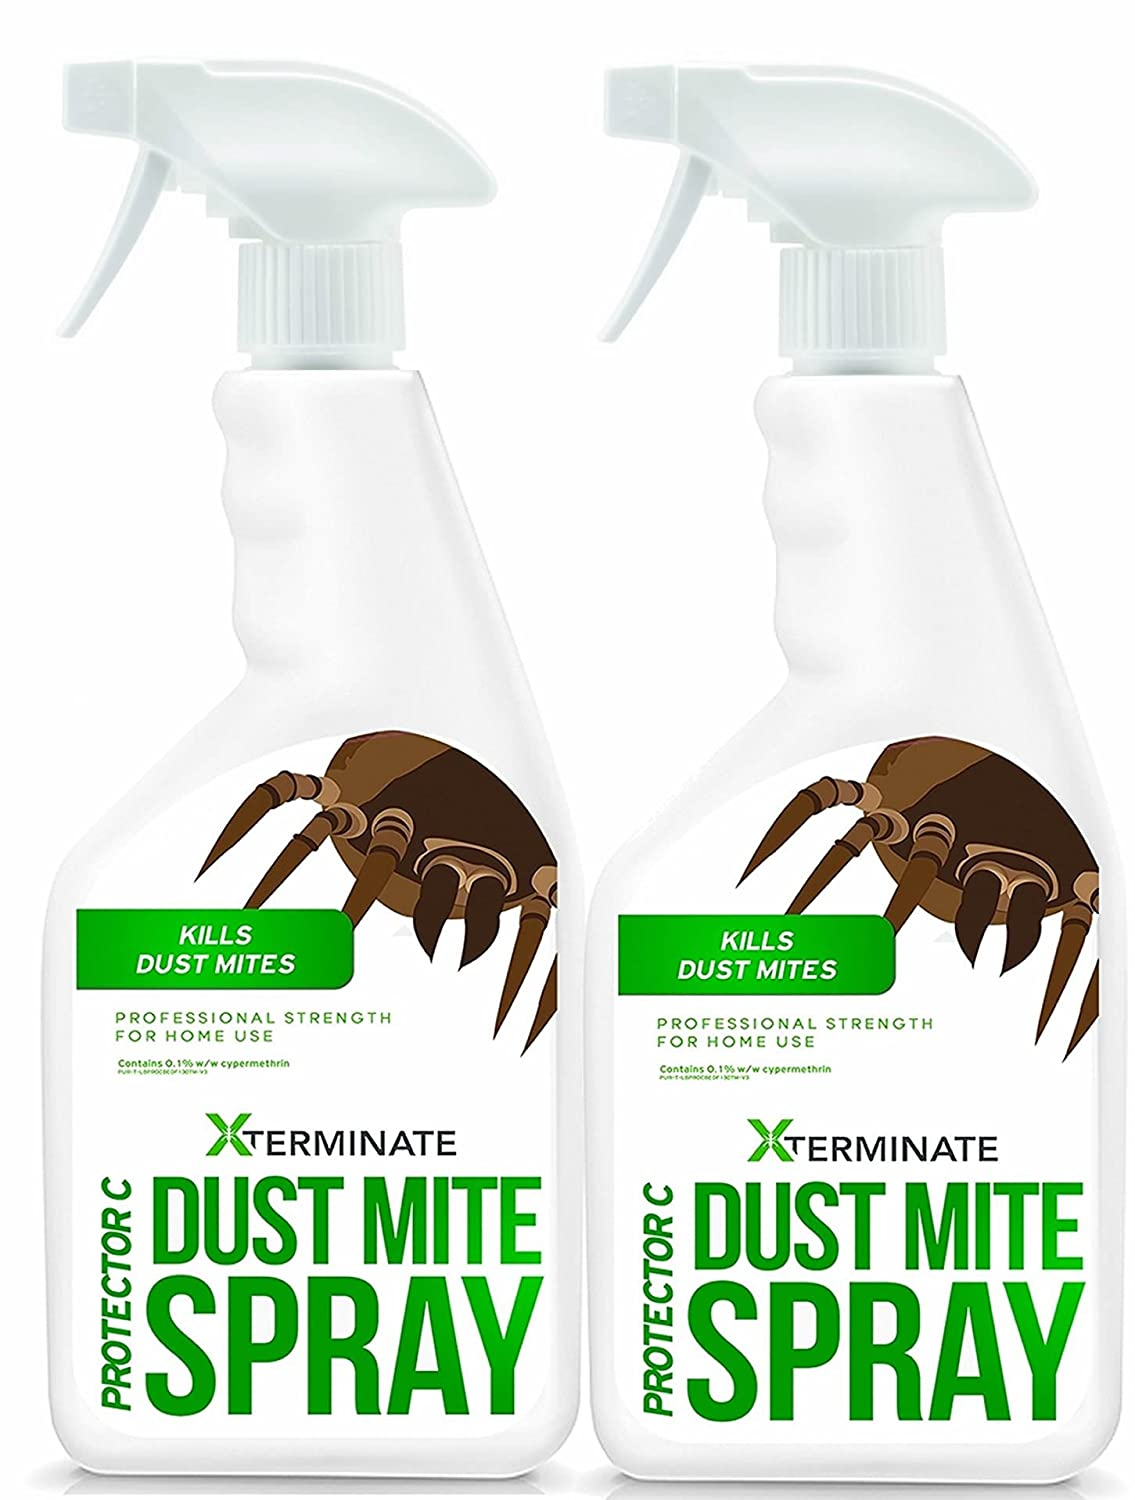 Xterminate Dust Mite Killer Spray Treatment (2 x 1L) • Professional Strength Formula For Home Use • For Bedrooms, Mattresses, Carpets, Furniture & More ...